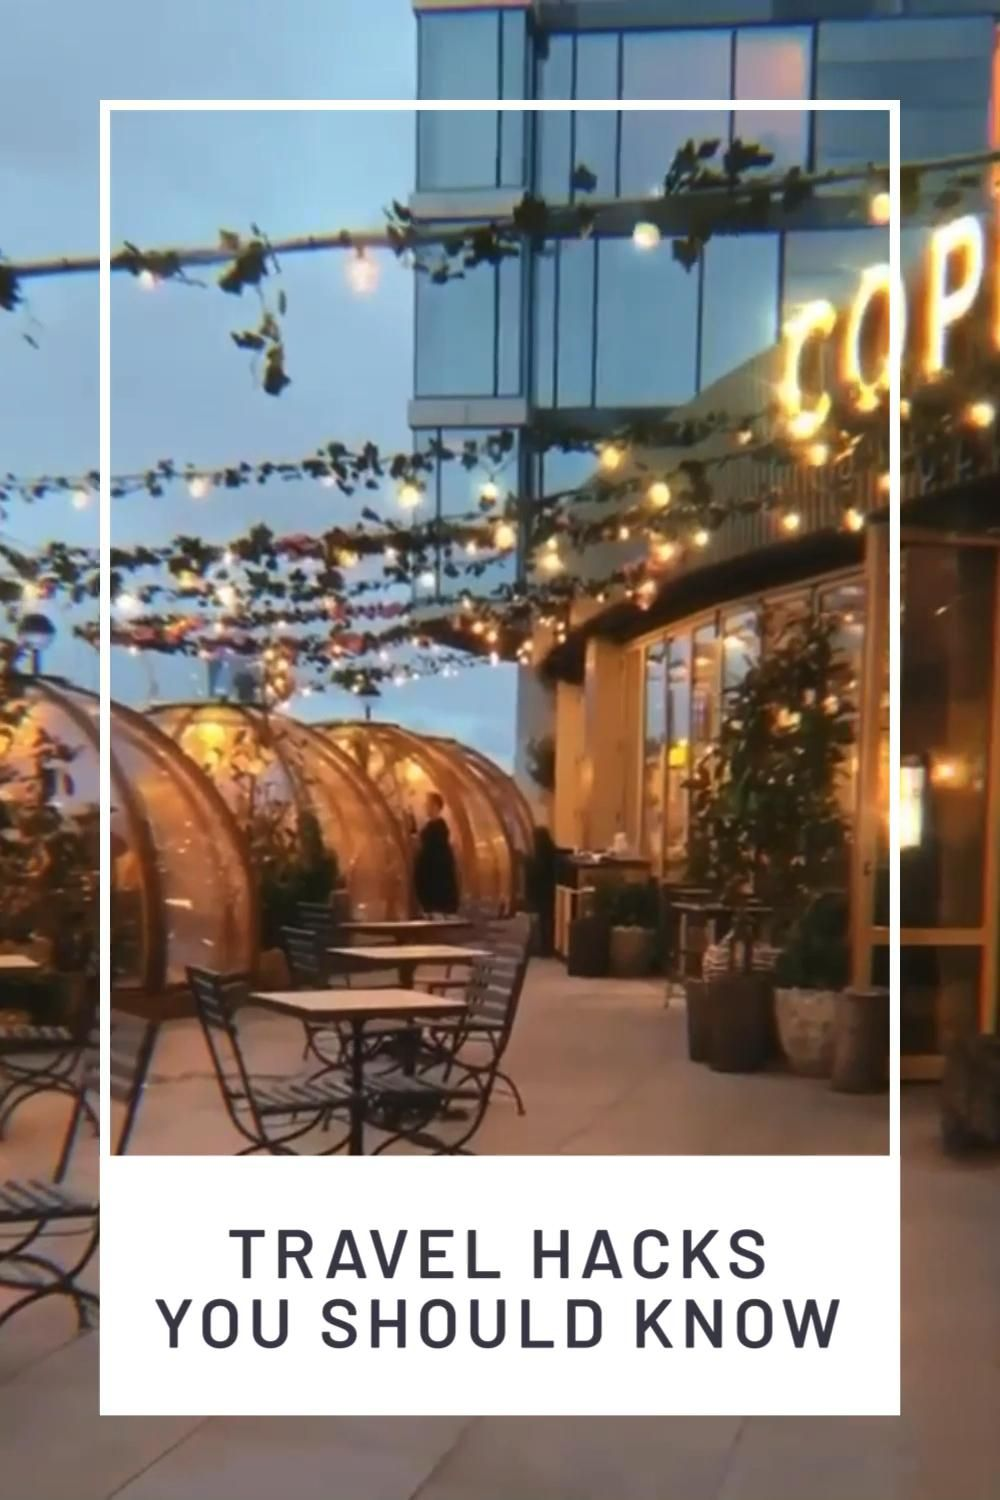 Must see Travel Hacks for yourself next trip #TravelHacks #resorts